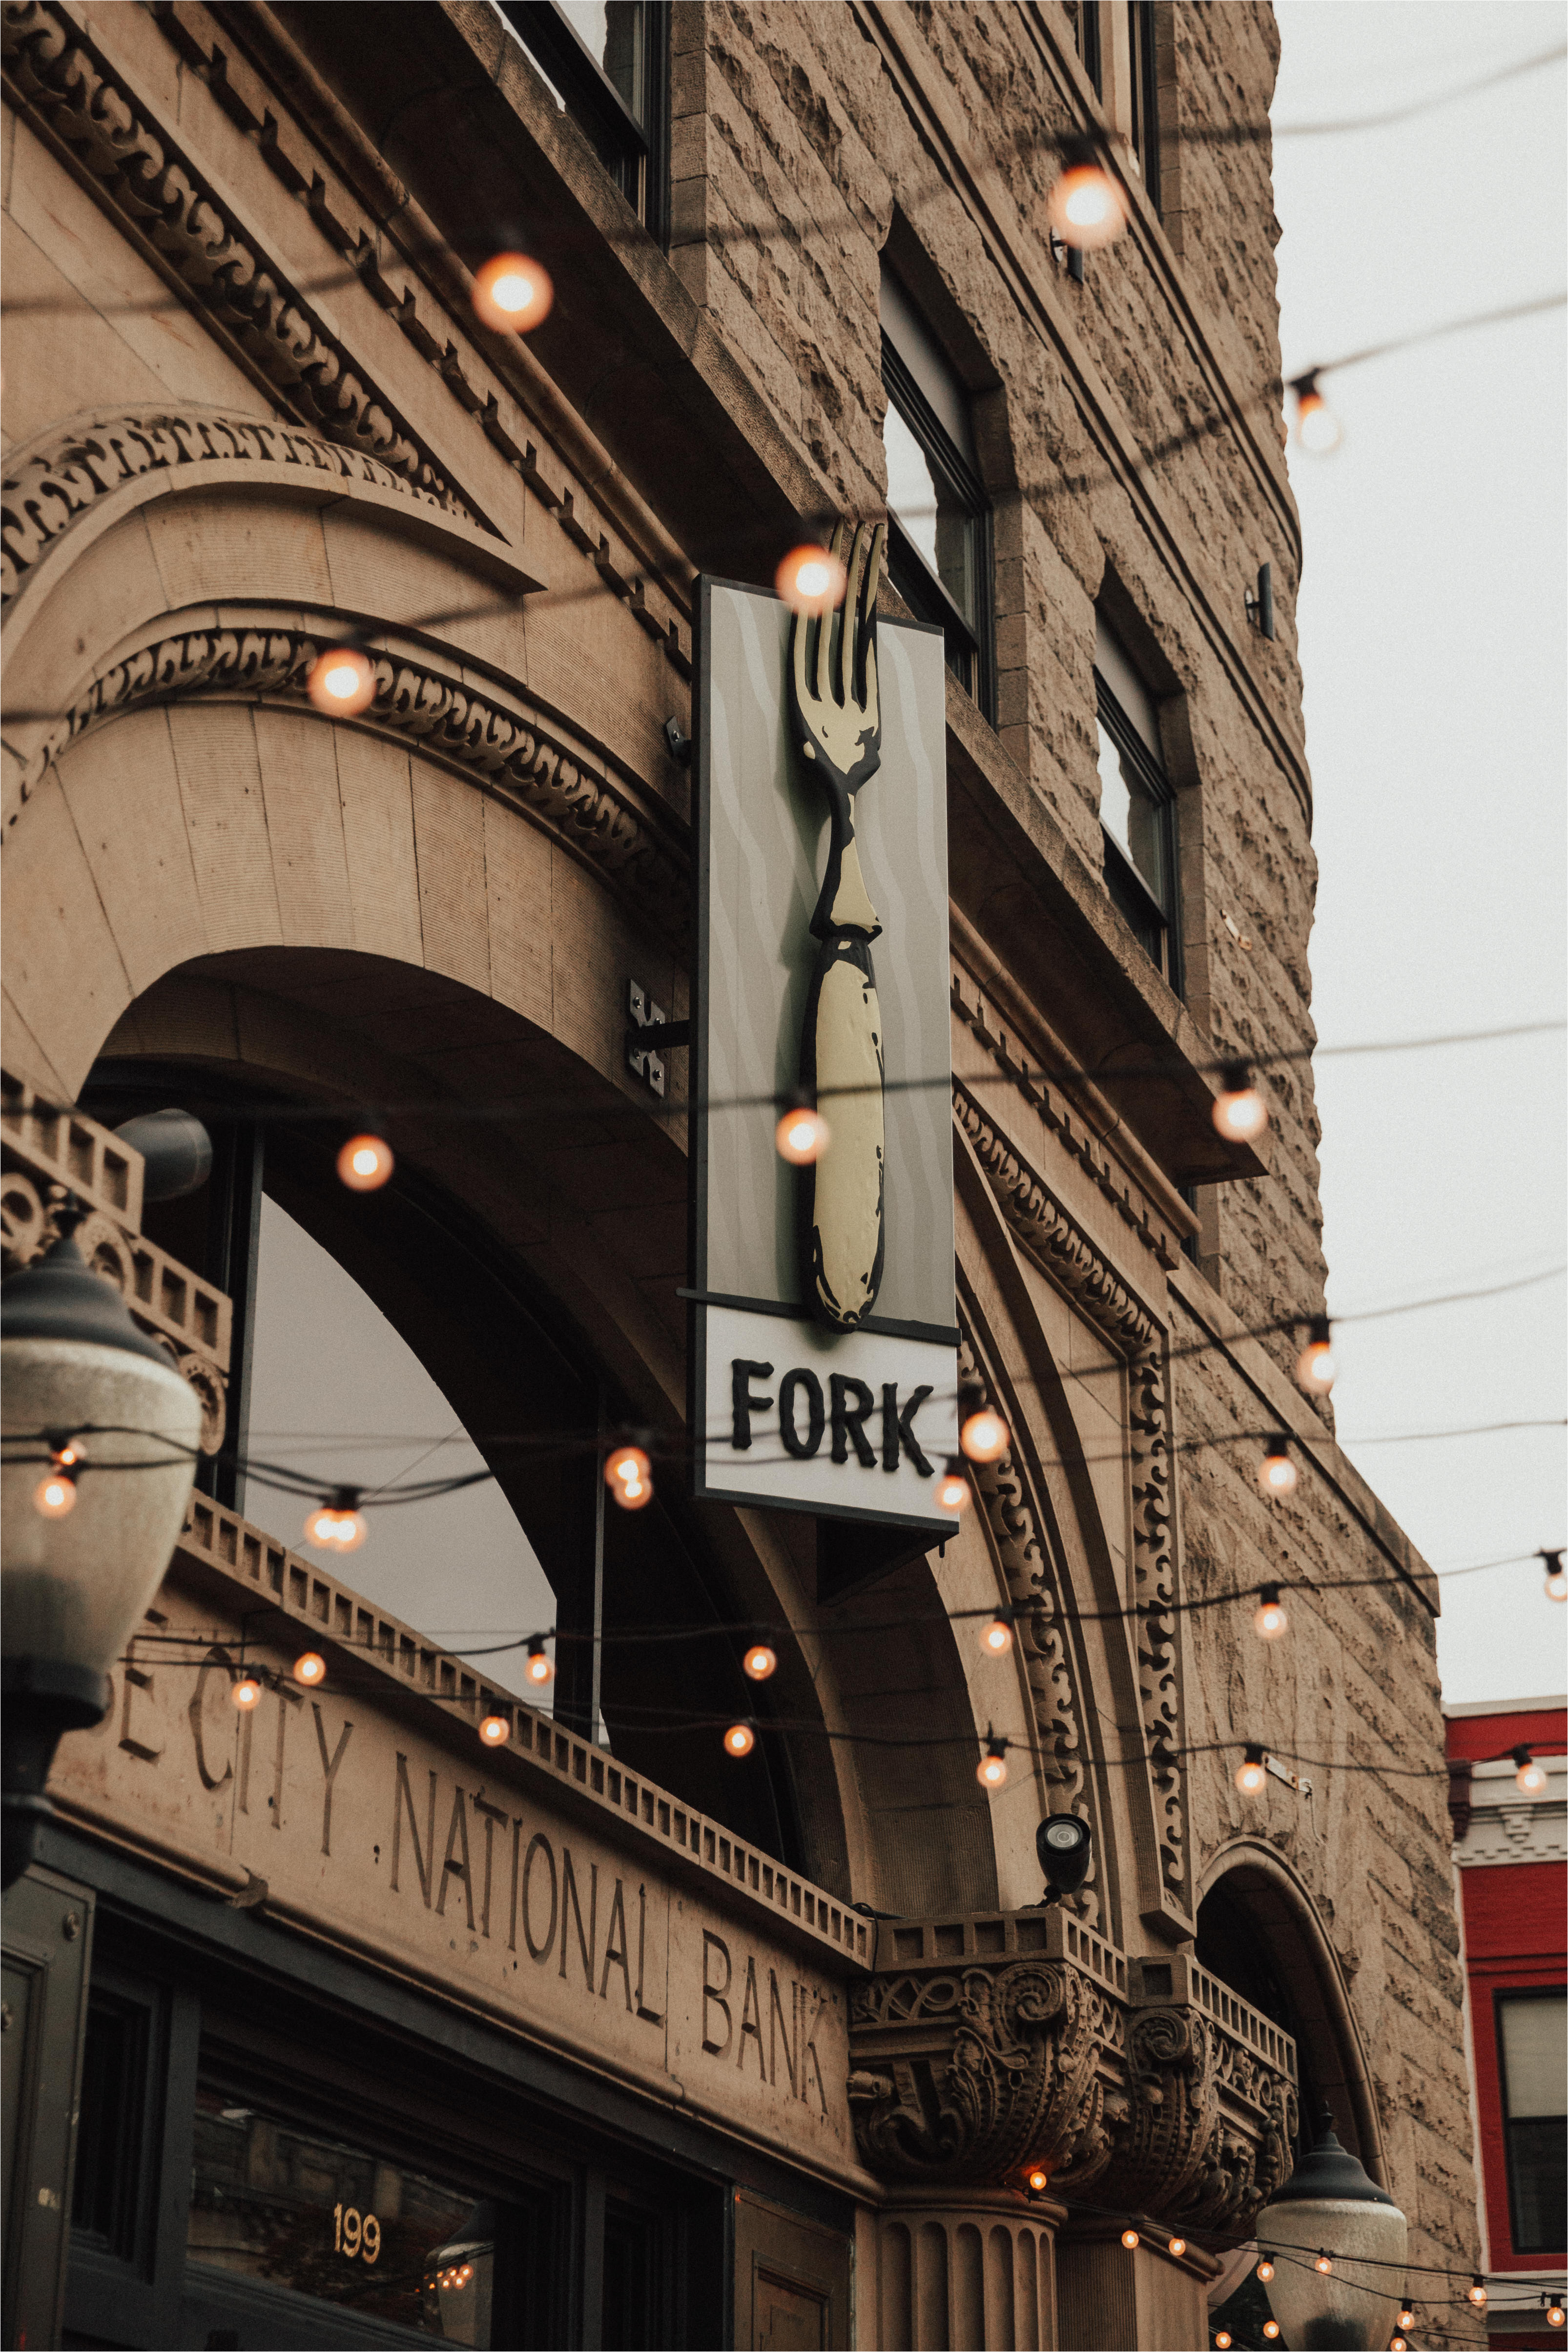 like many other boise restaurants fork is loyal to local which means they provide delicious dishes with ingredients from local farmers and growers